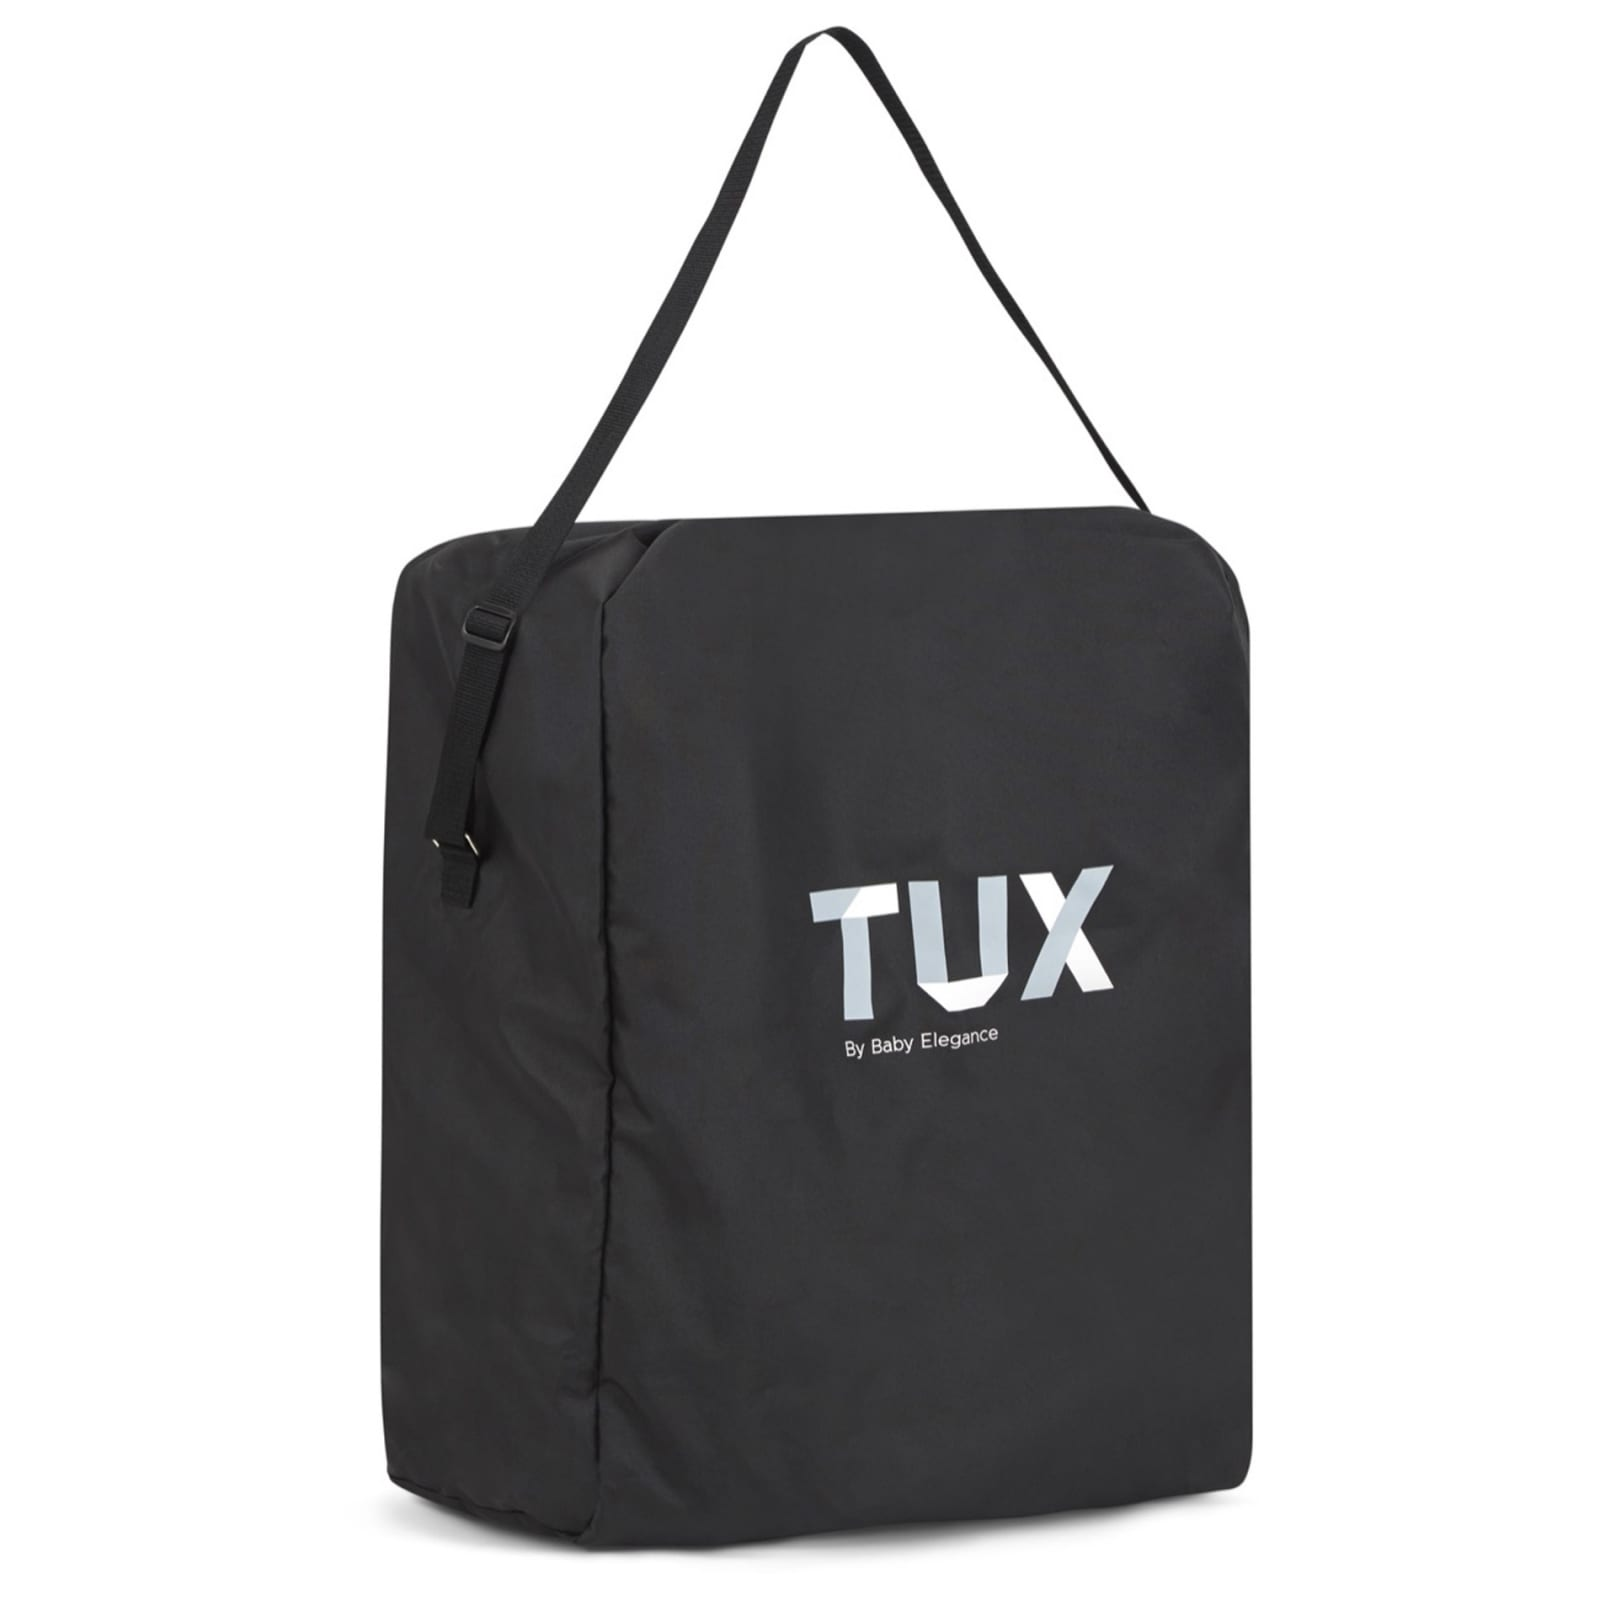 TUX Travel Bag product image